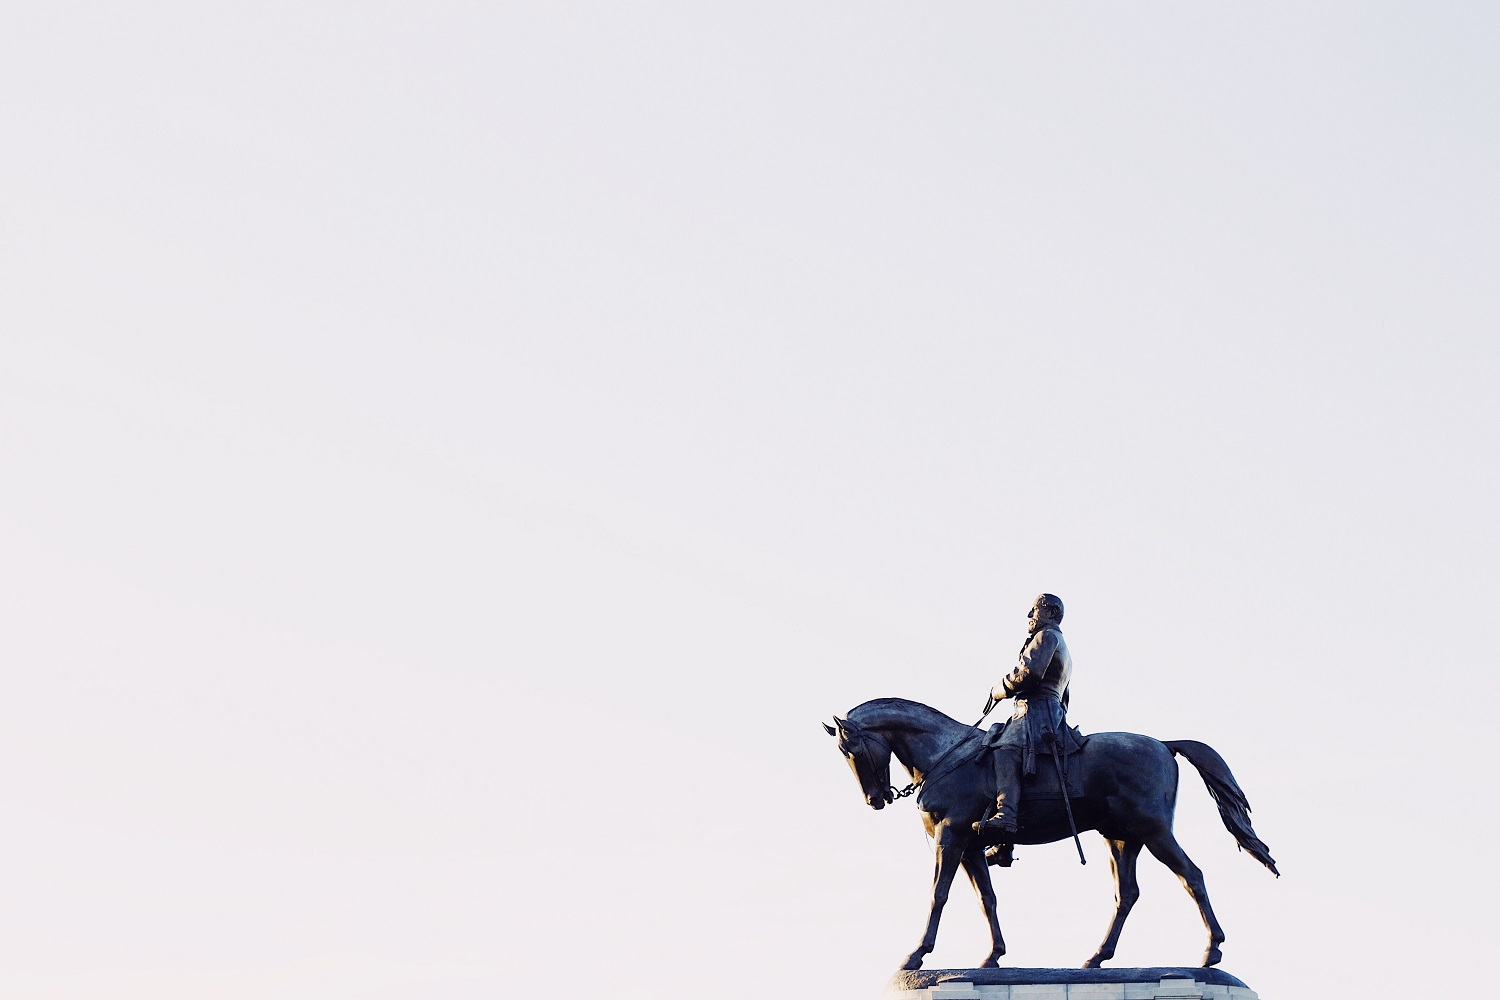 Image of a confederate statue in Richmond, VA of a man on a horse.